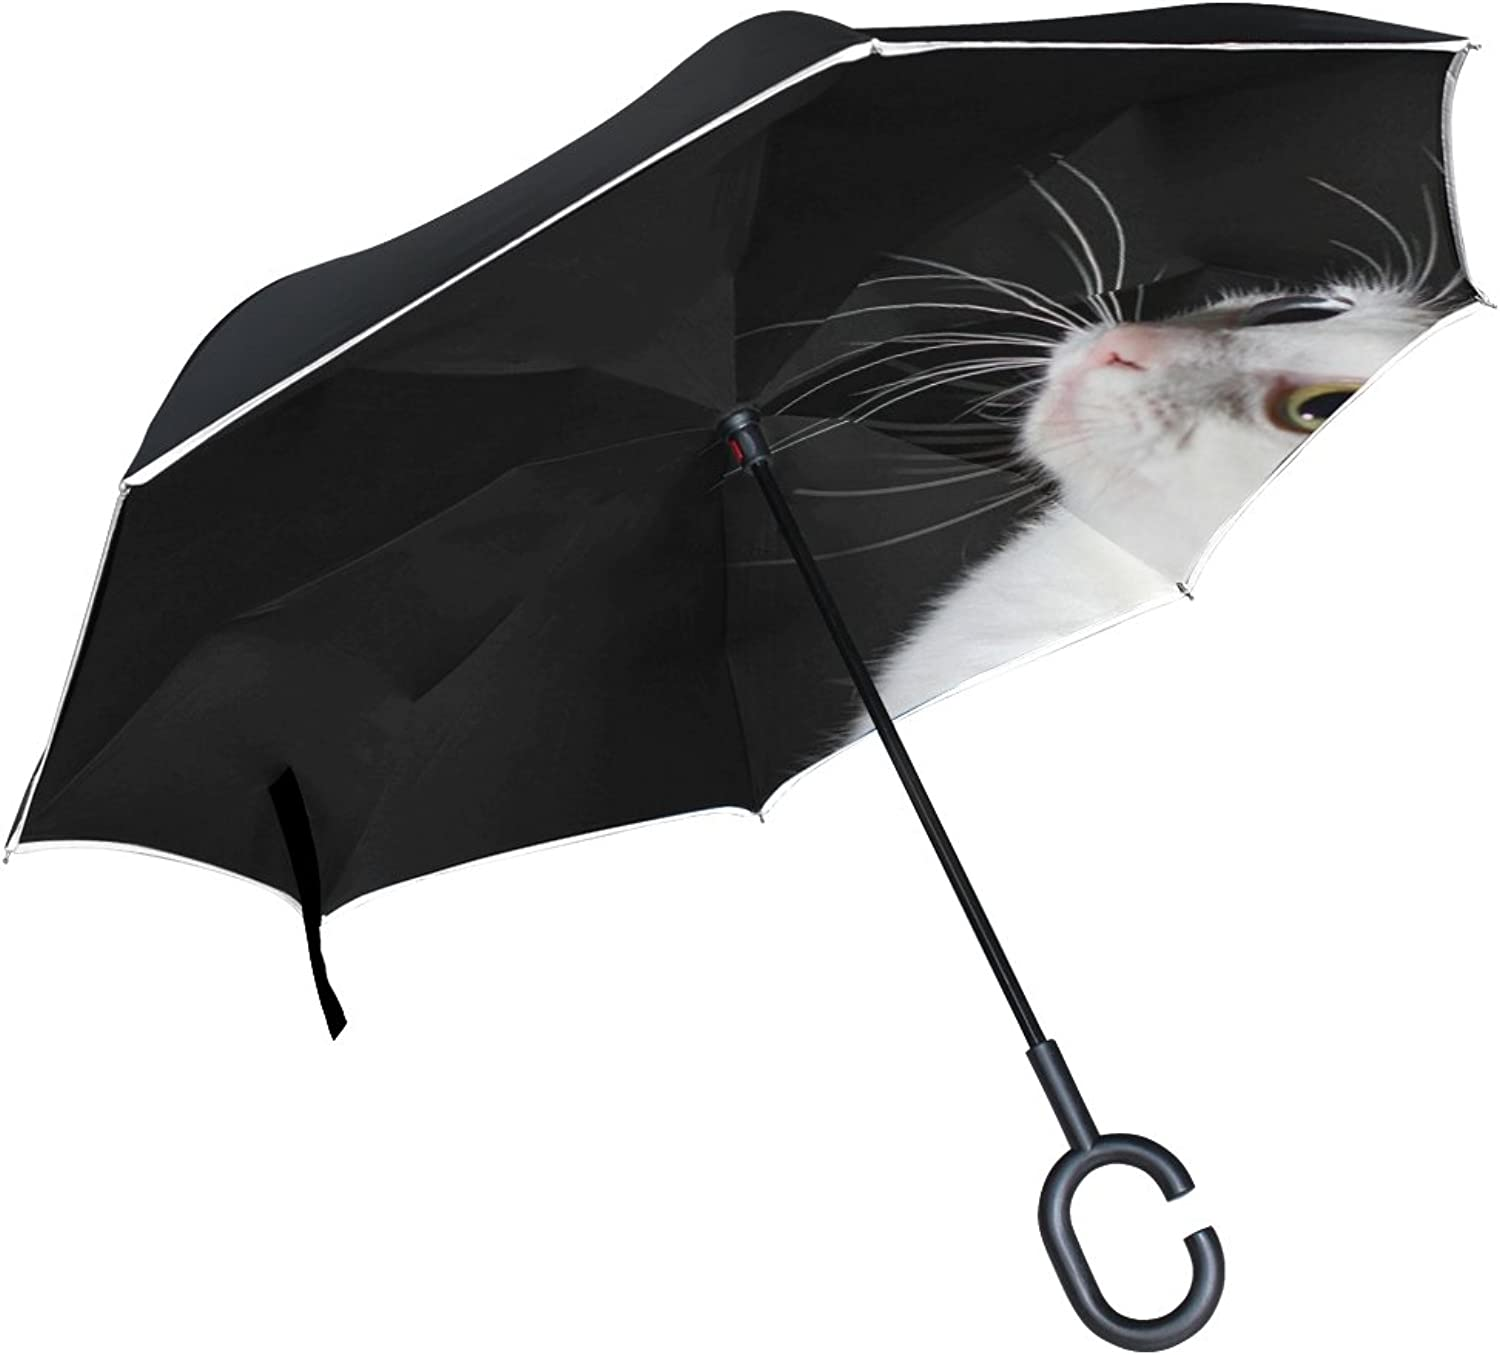 Double Layer Ingreened Cat Black White Different colord Eyes Umbrellas Reverse Folding Umbrella Windproof Uv Predection Big Straight Umbrella for Car Rain Outdoor with CShaped Handle